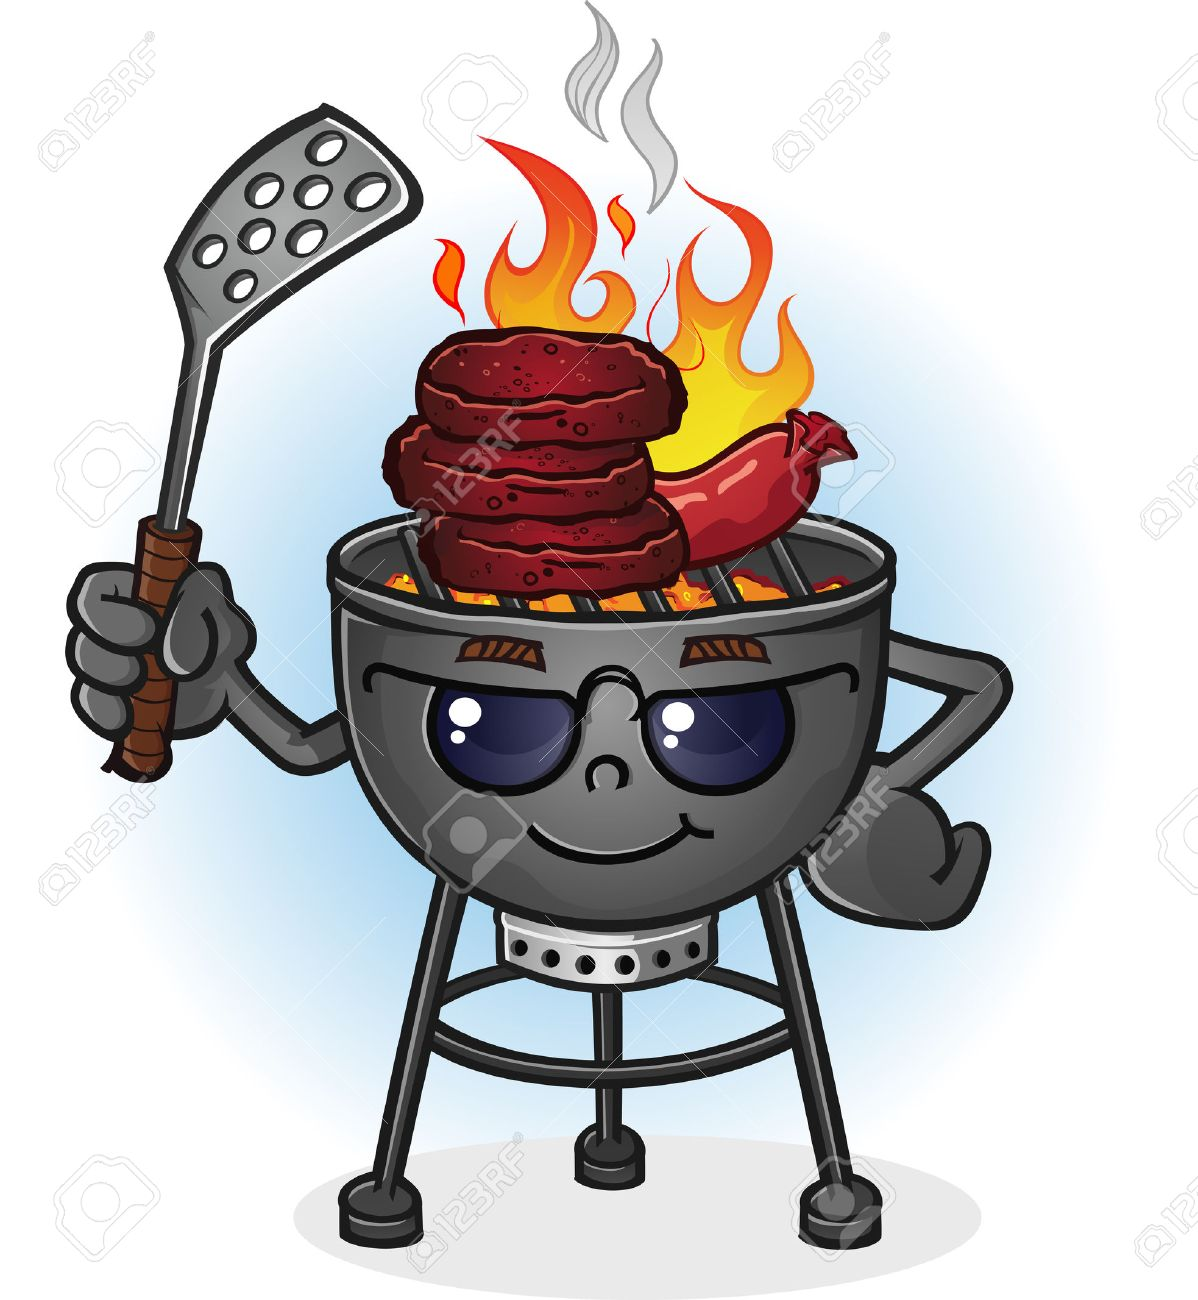 Barbecue Grill Cartoon Character with Attitude.